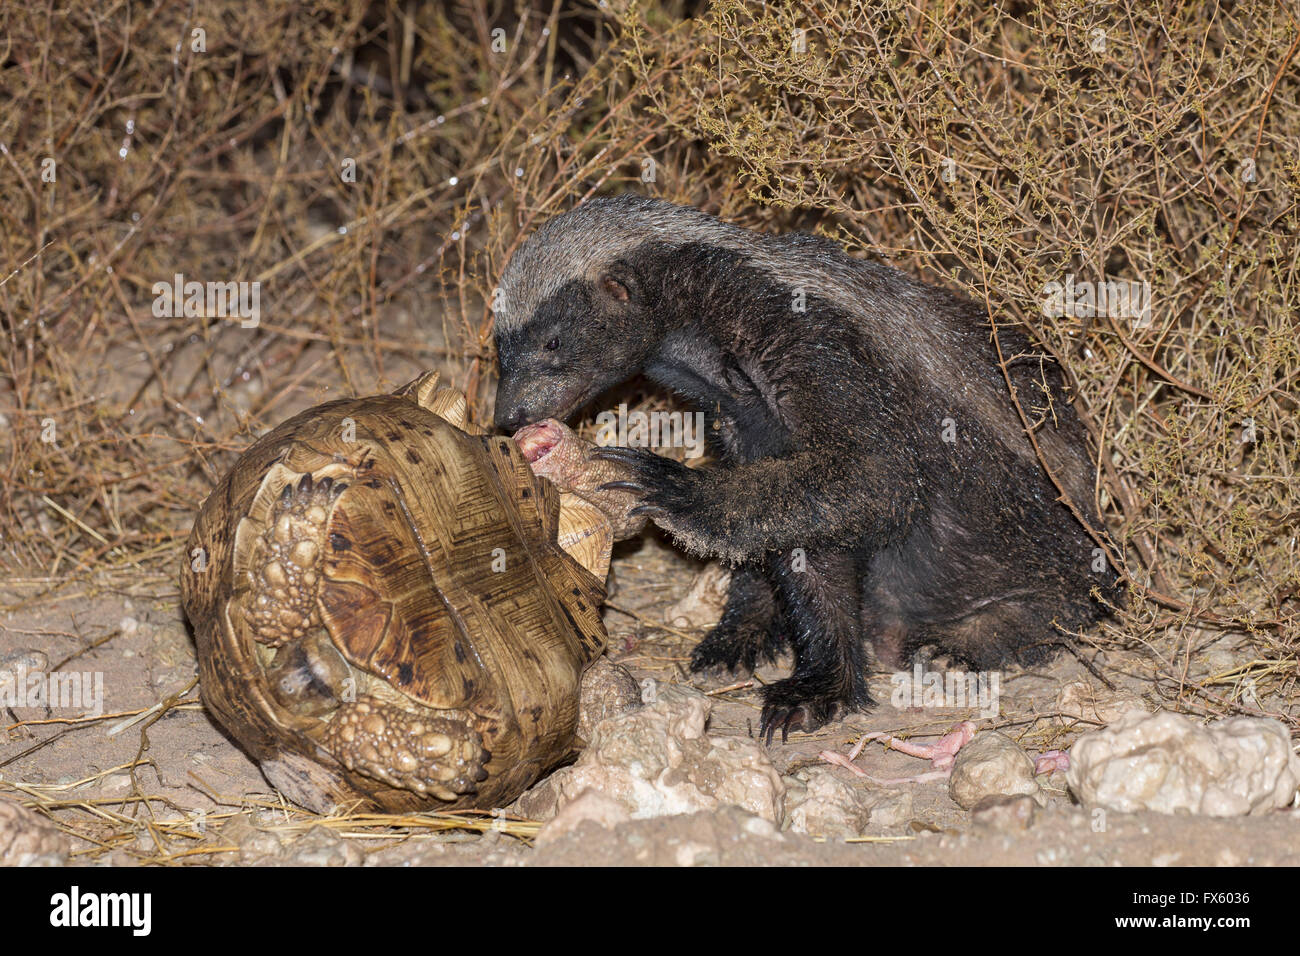 Honey Badger or ratel (Mellivora capensis) eating leopard tortoise (Geochelone pardalis), Kgalagadi, South Africa - Stock Image